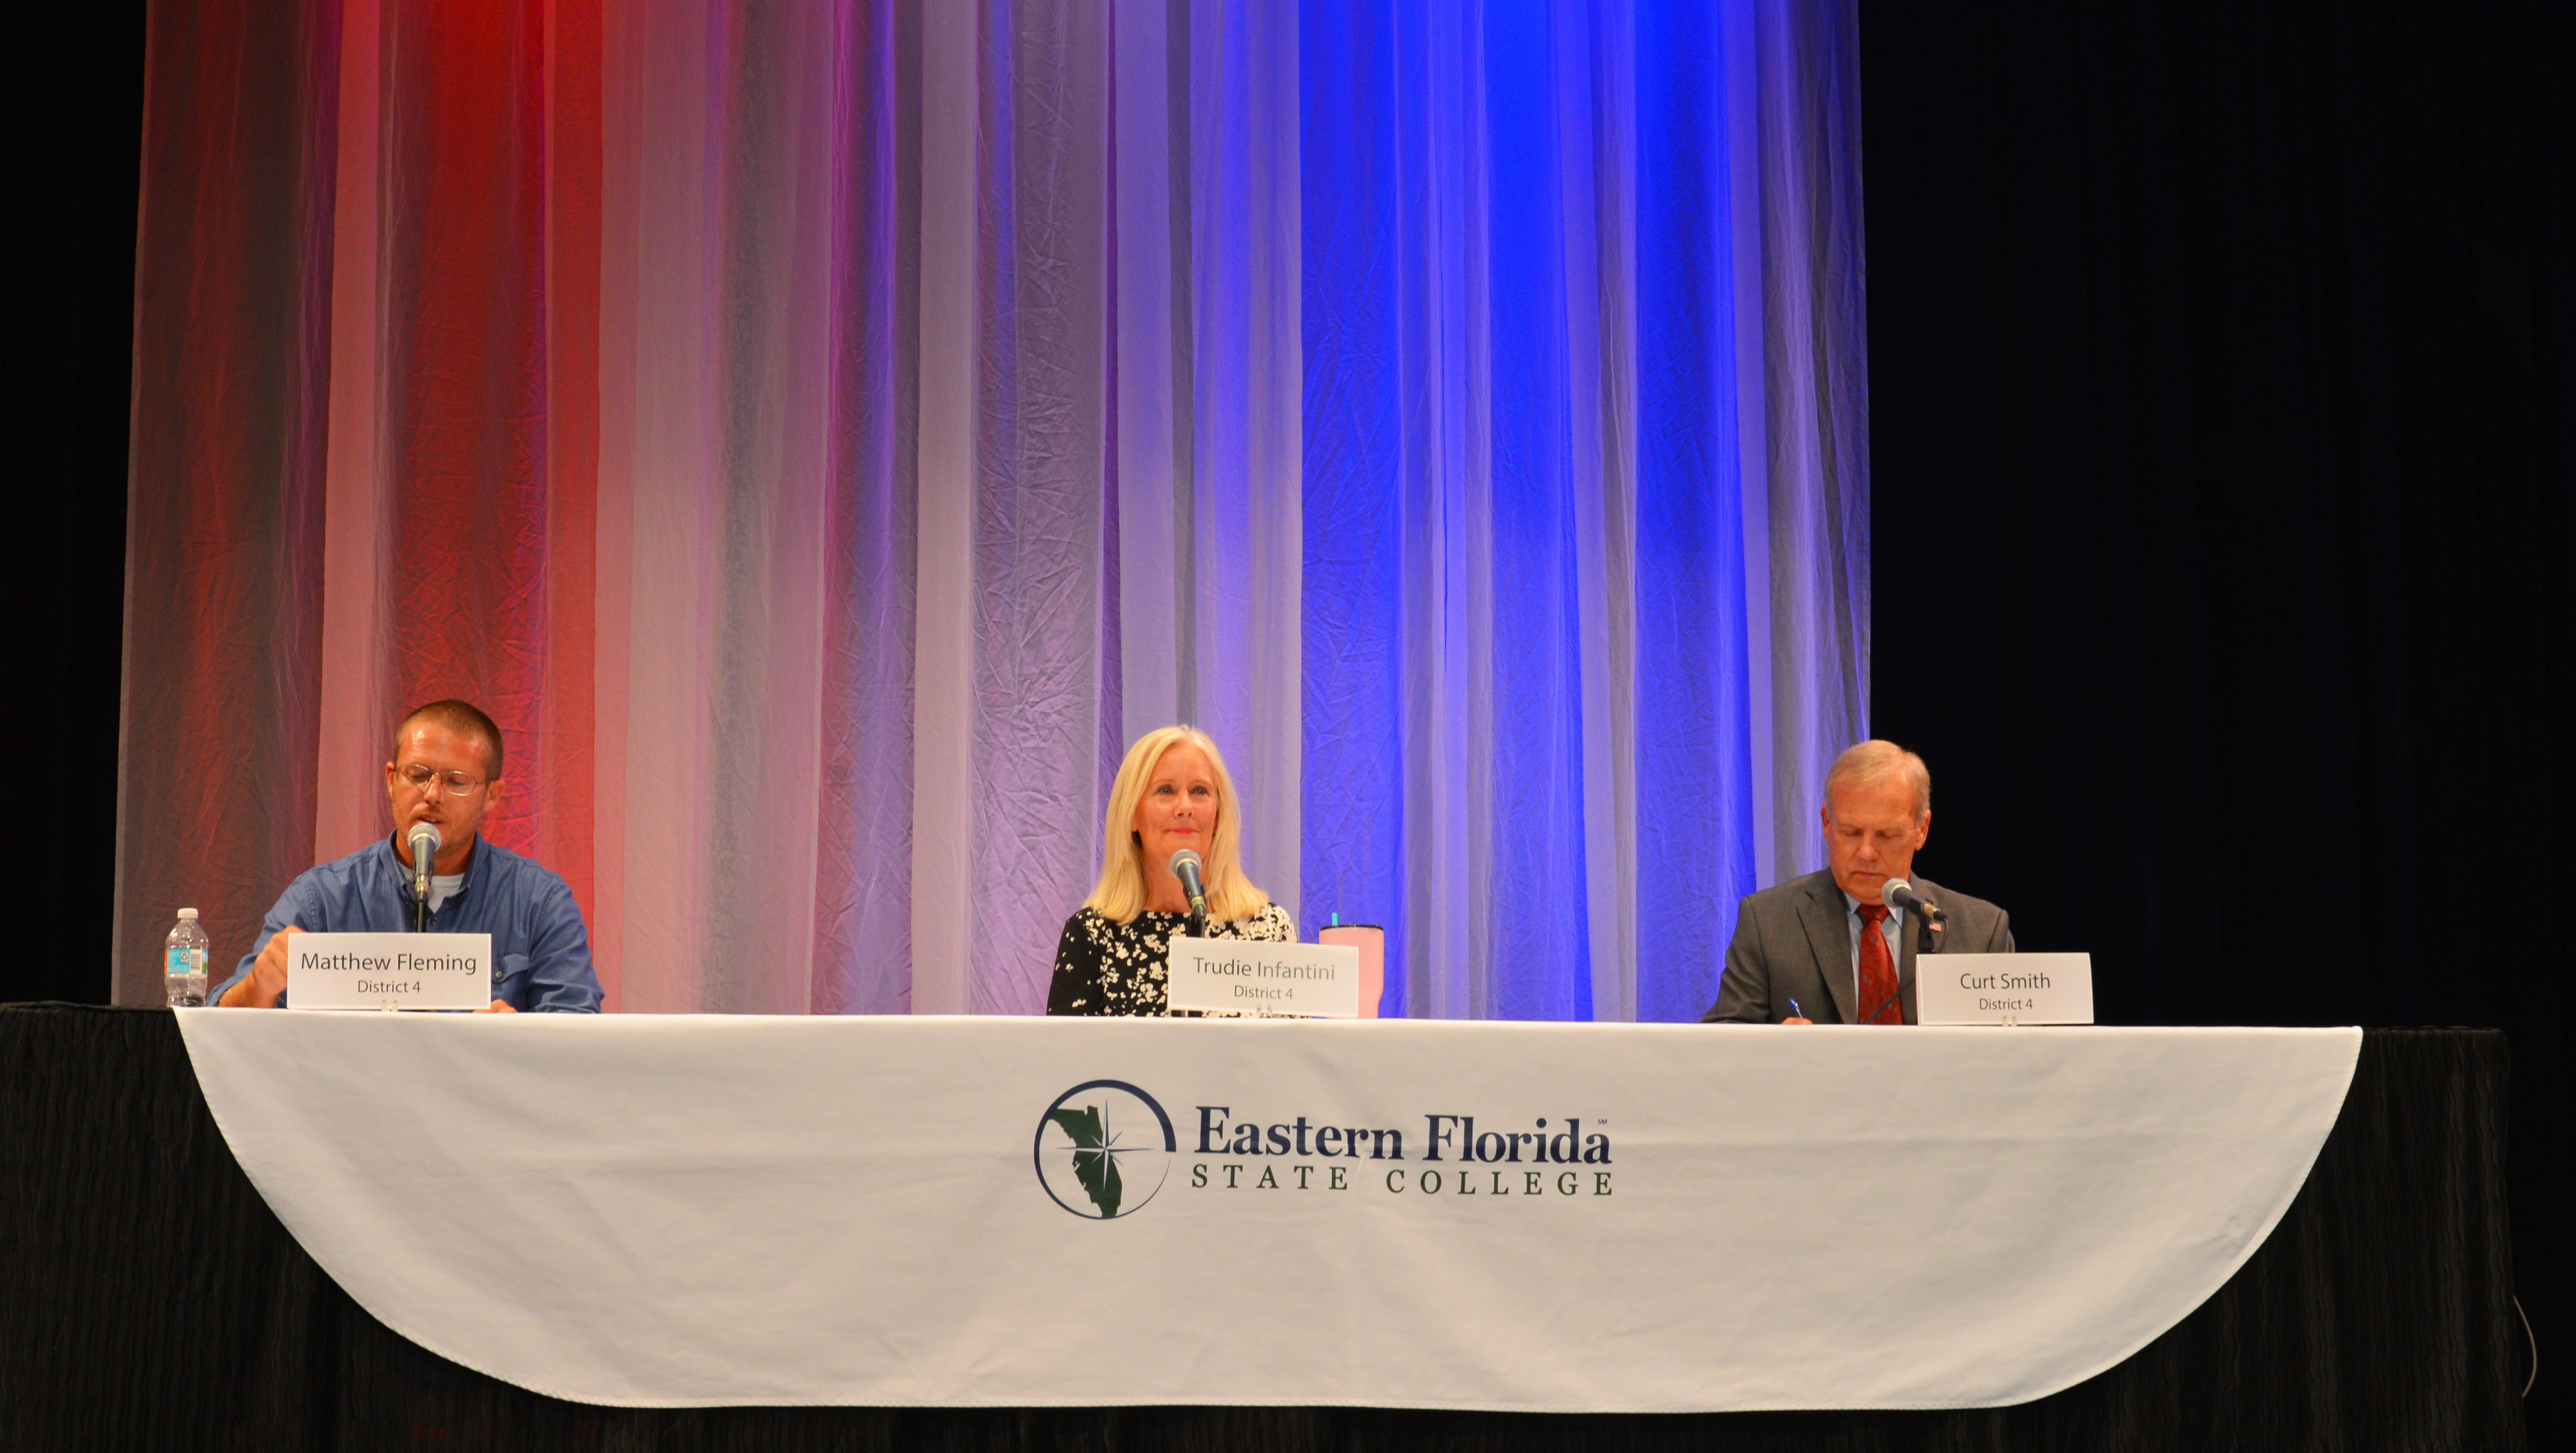 Our forums with candidates in County Commission Districts 2 and 4 are now posted.